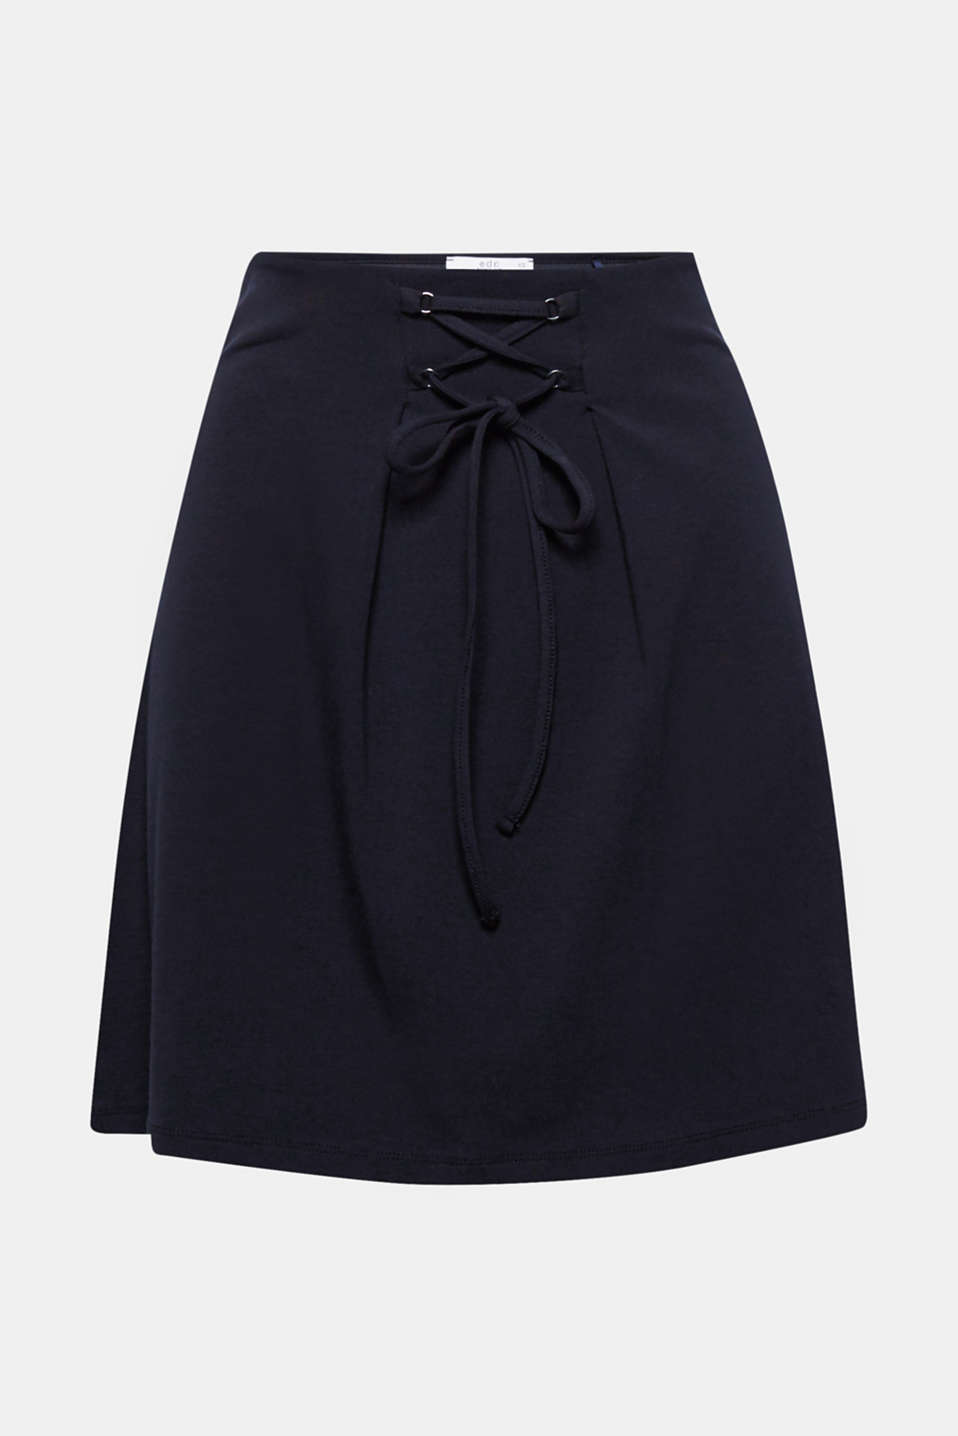 This flared stretch jersey skirt with decorative lacing is wonderfully unfussy, summery and lightweight!